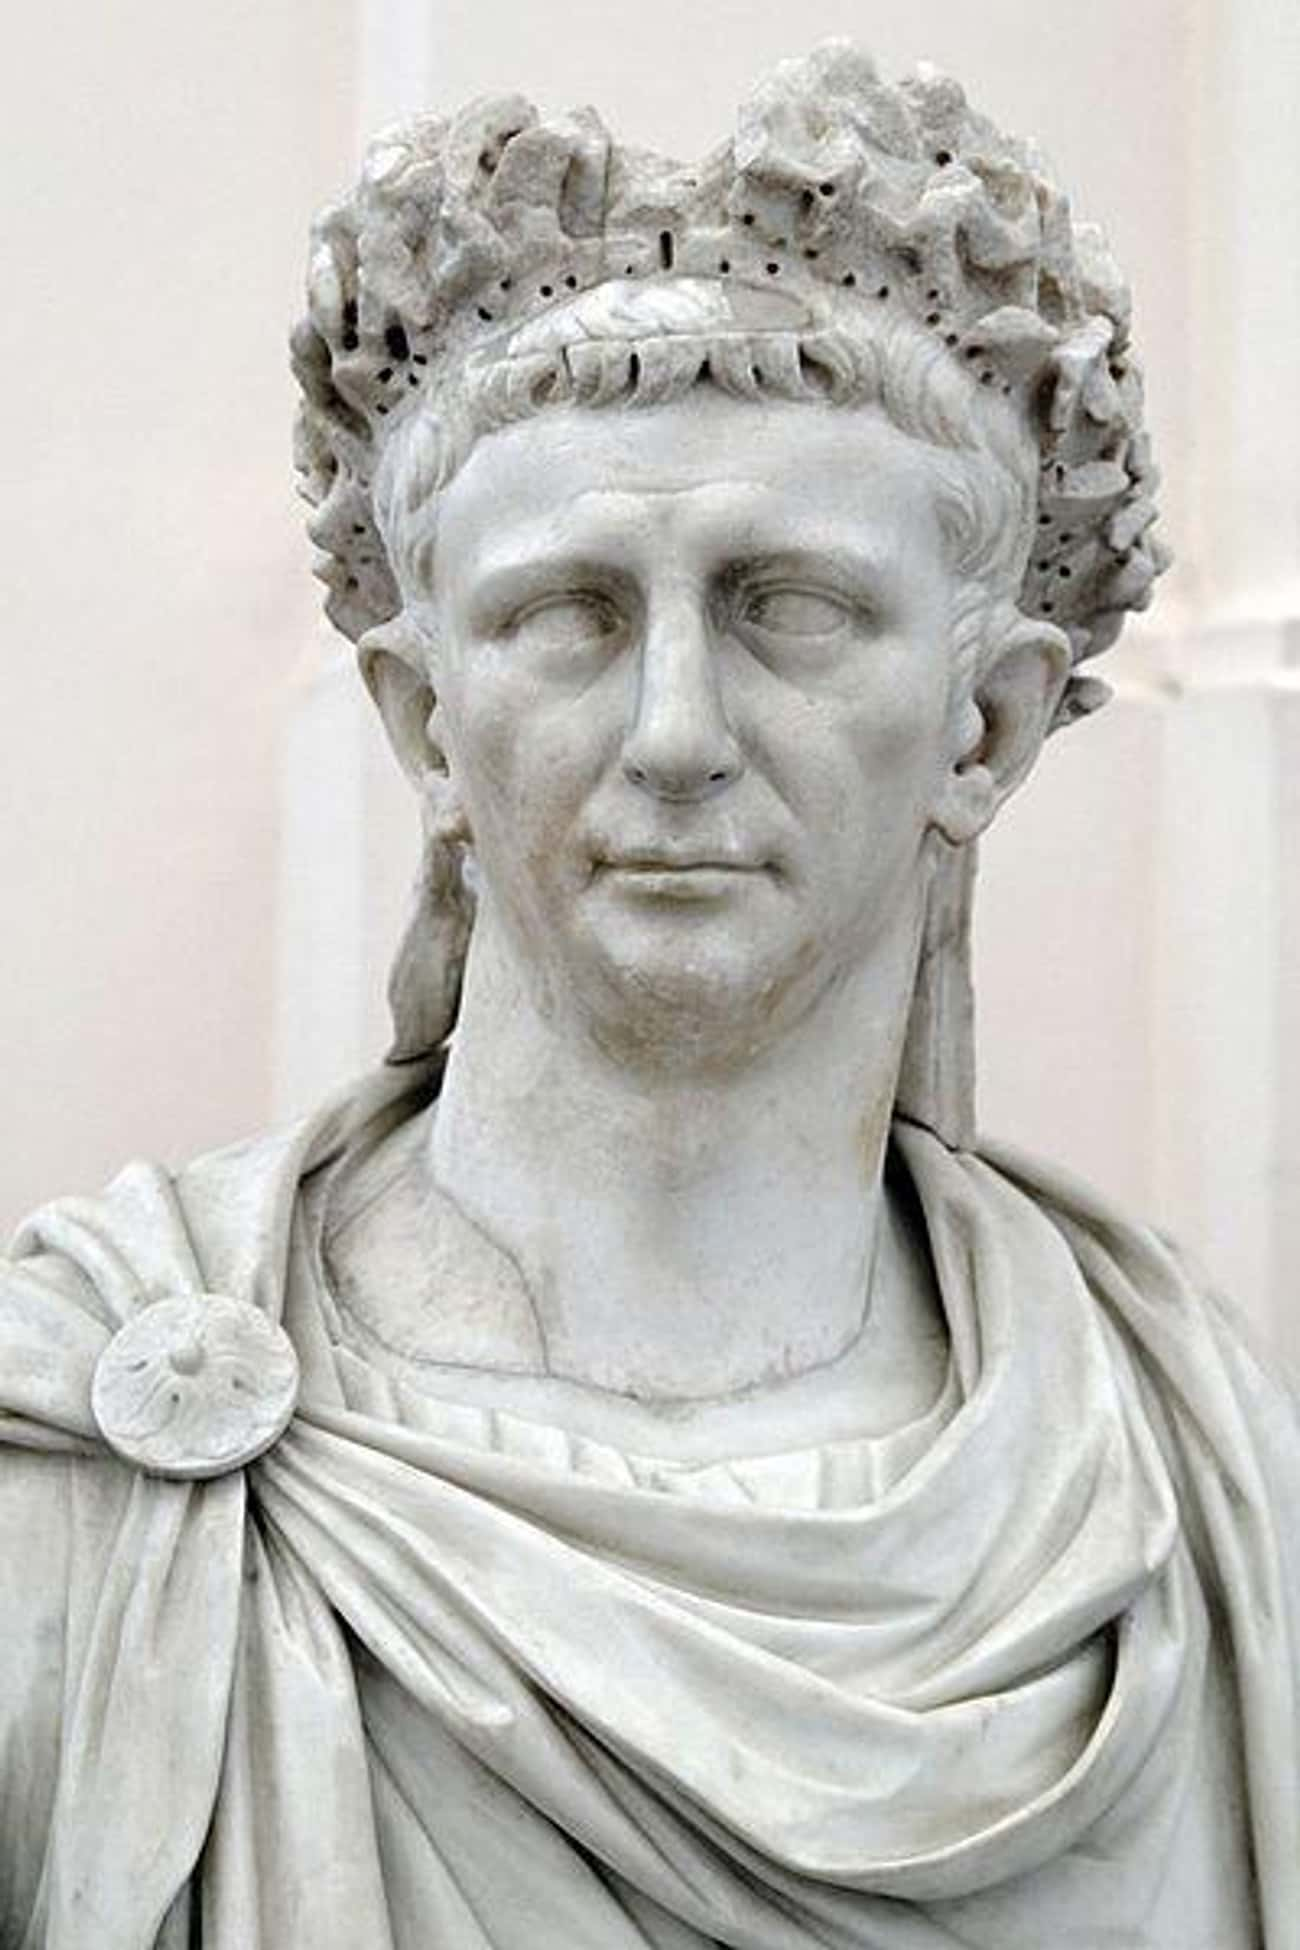 Claudius Is Tyrion Lannister is listed (or ranked) 2 on the list Real Historical Figures Who Inspired Game Of Thrones Characters